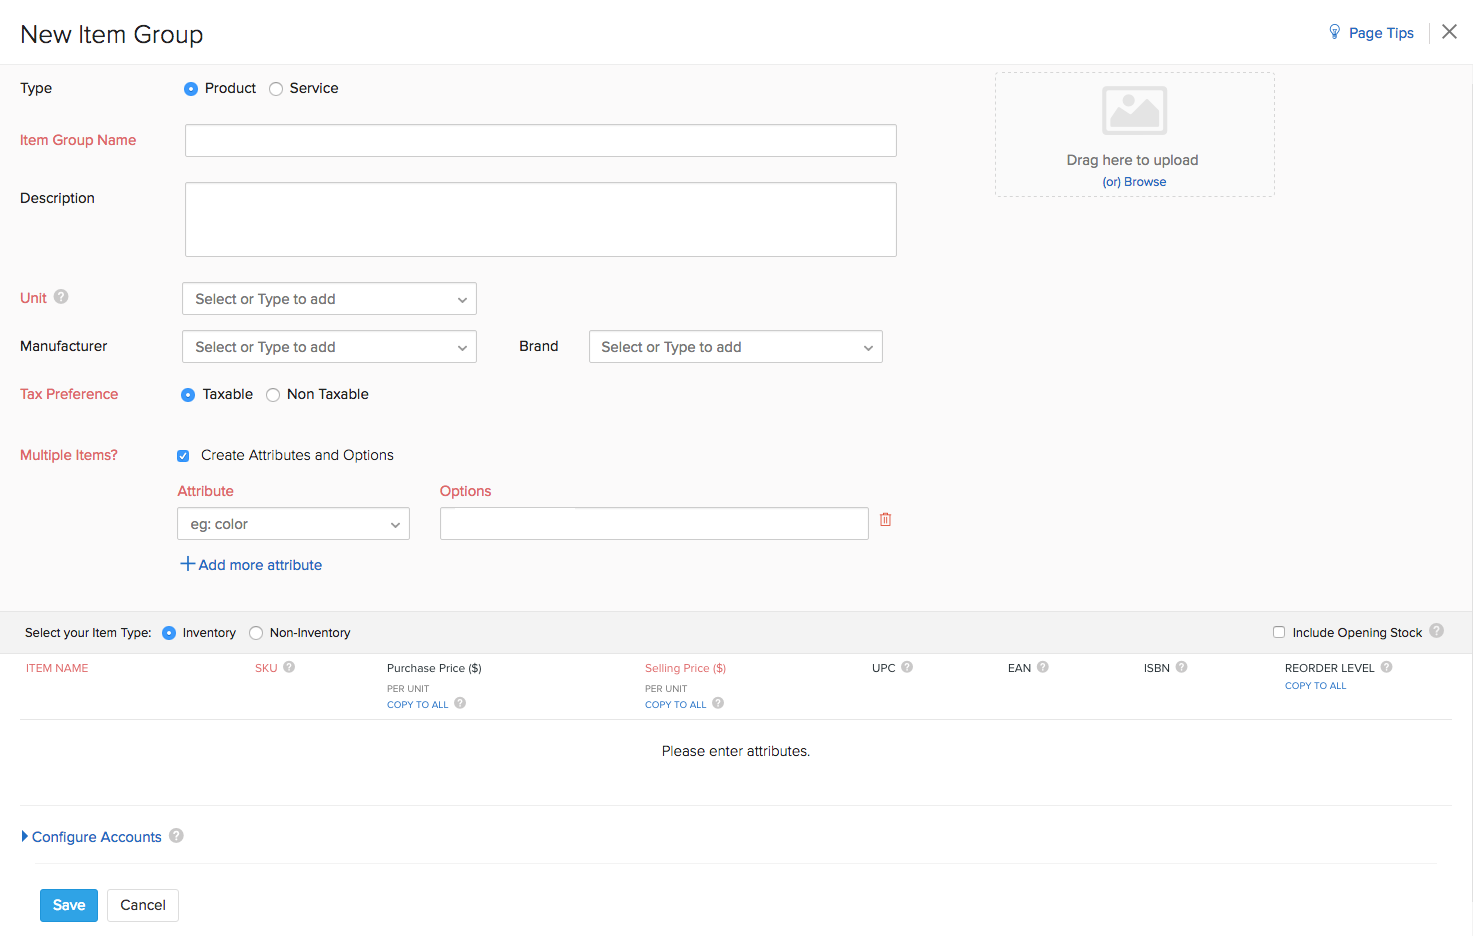 Creation of Items & Item Groups in Zoho Inventory